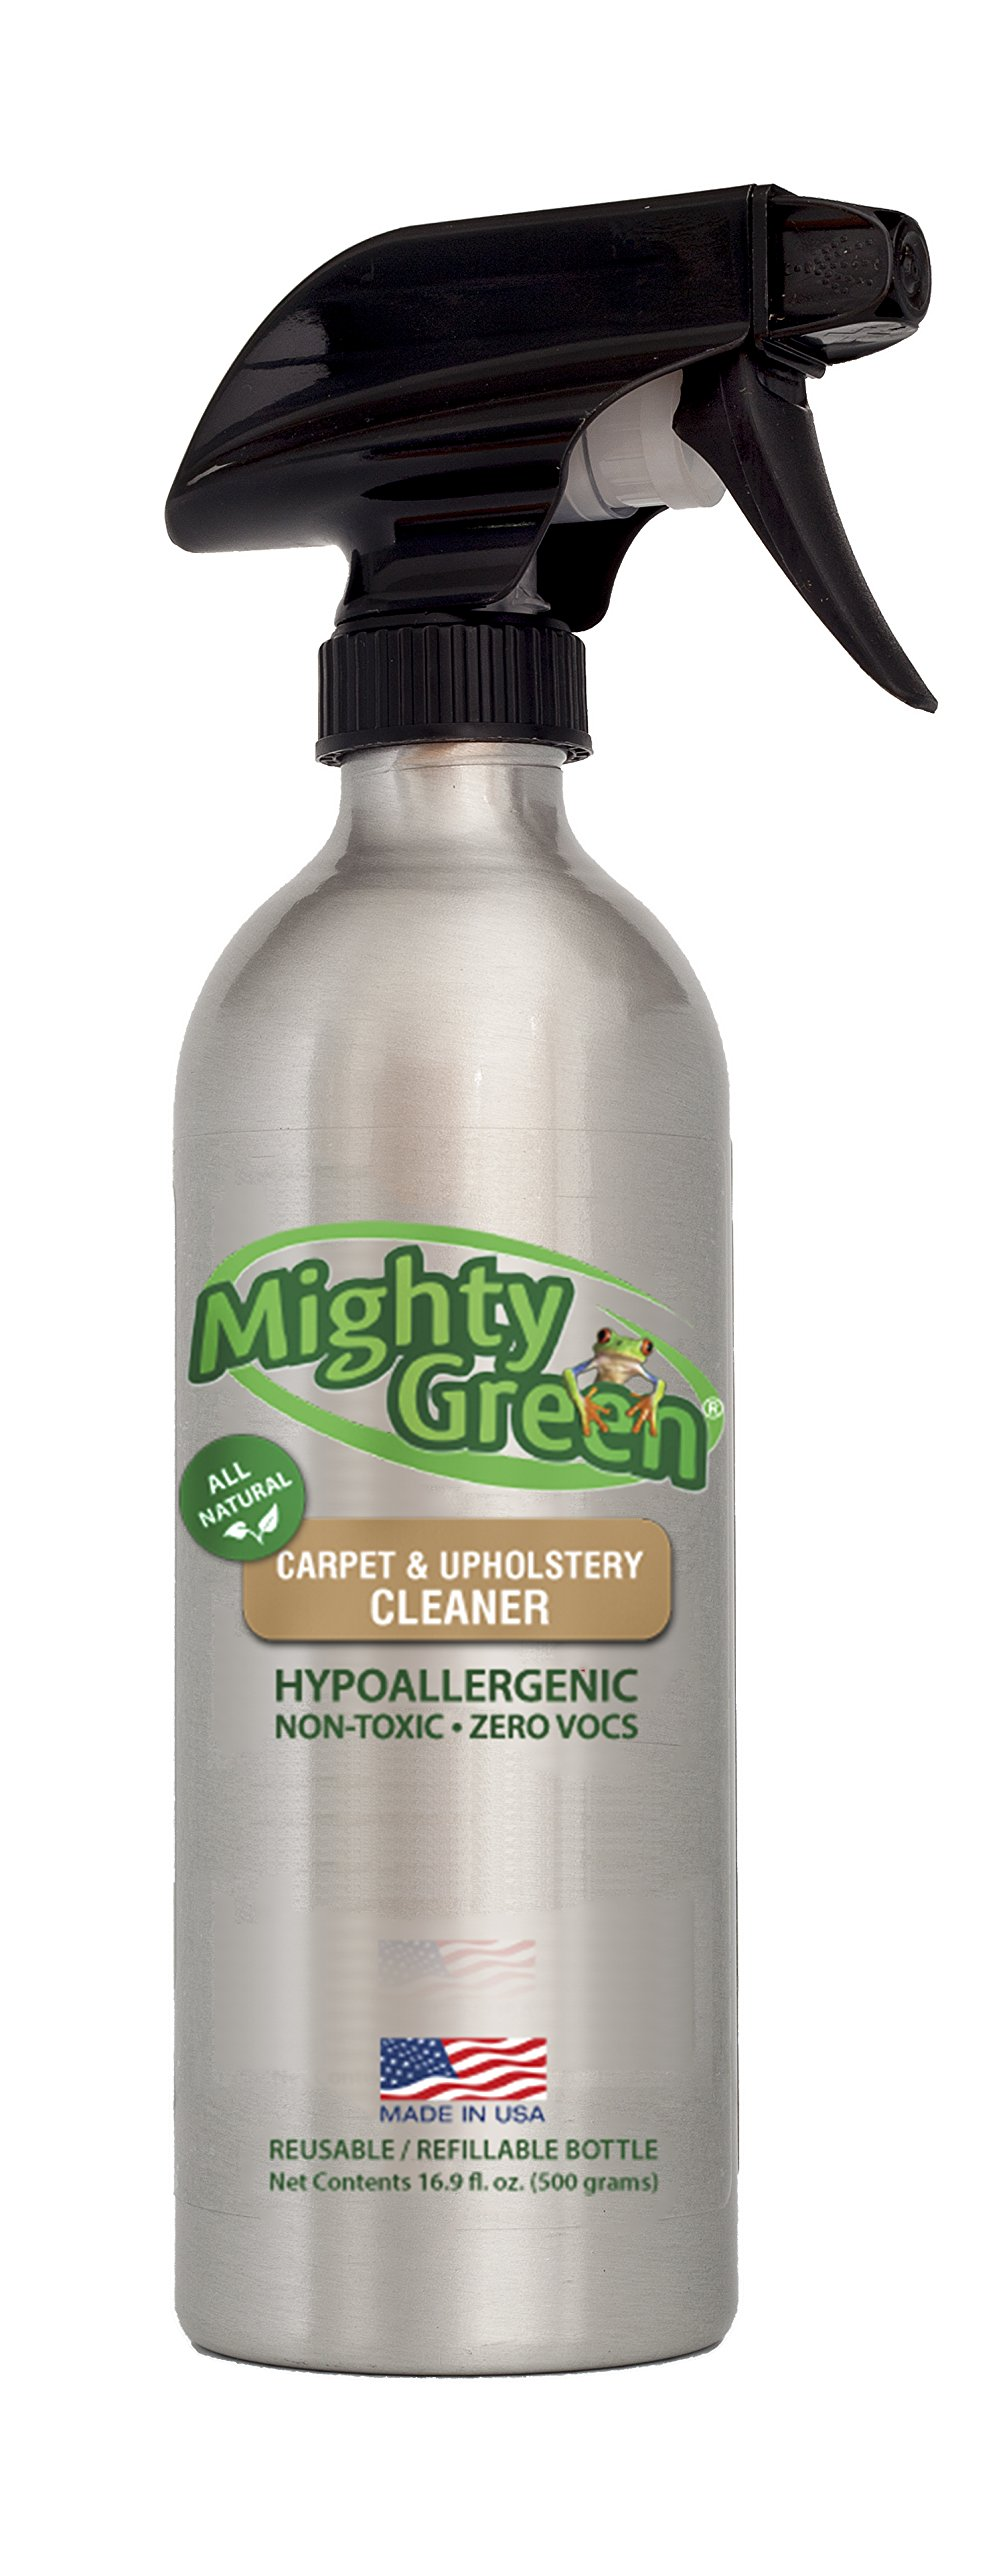 Mighty Green Carpet & Upholstery Cleaner